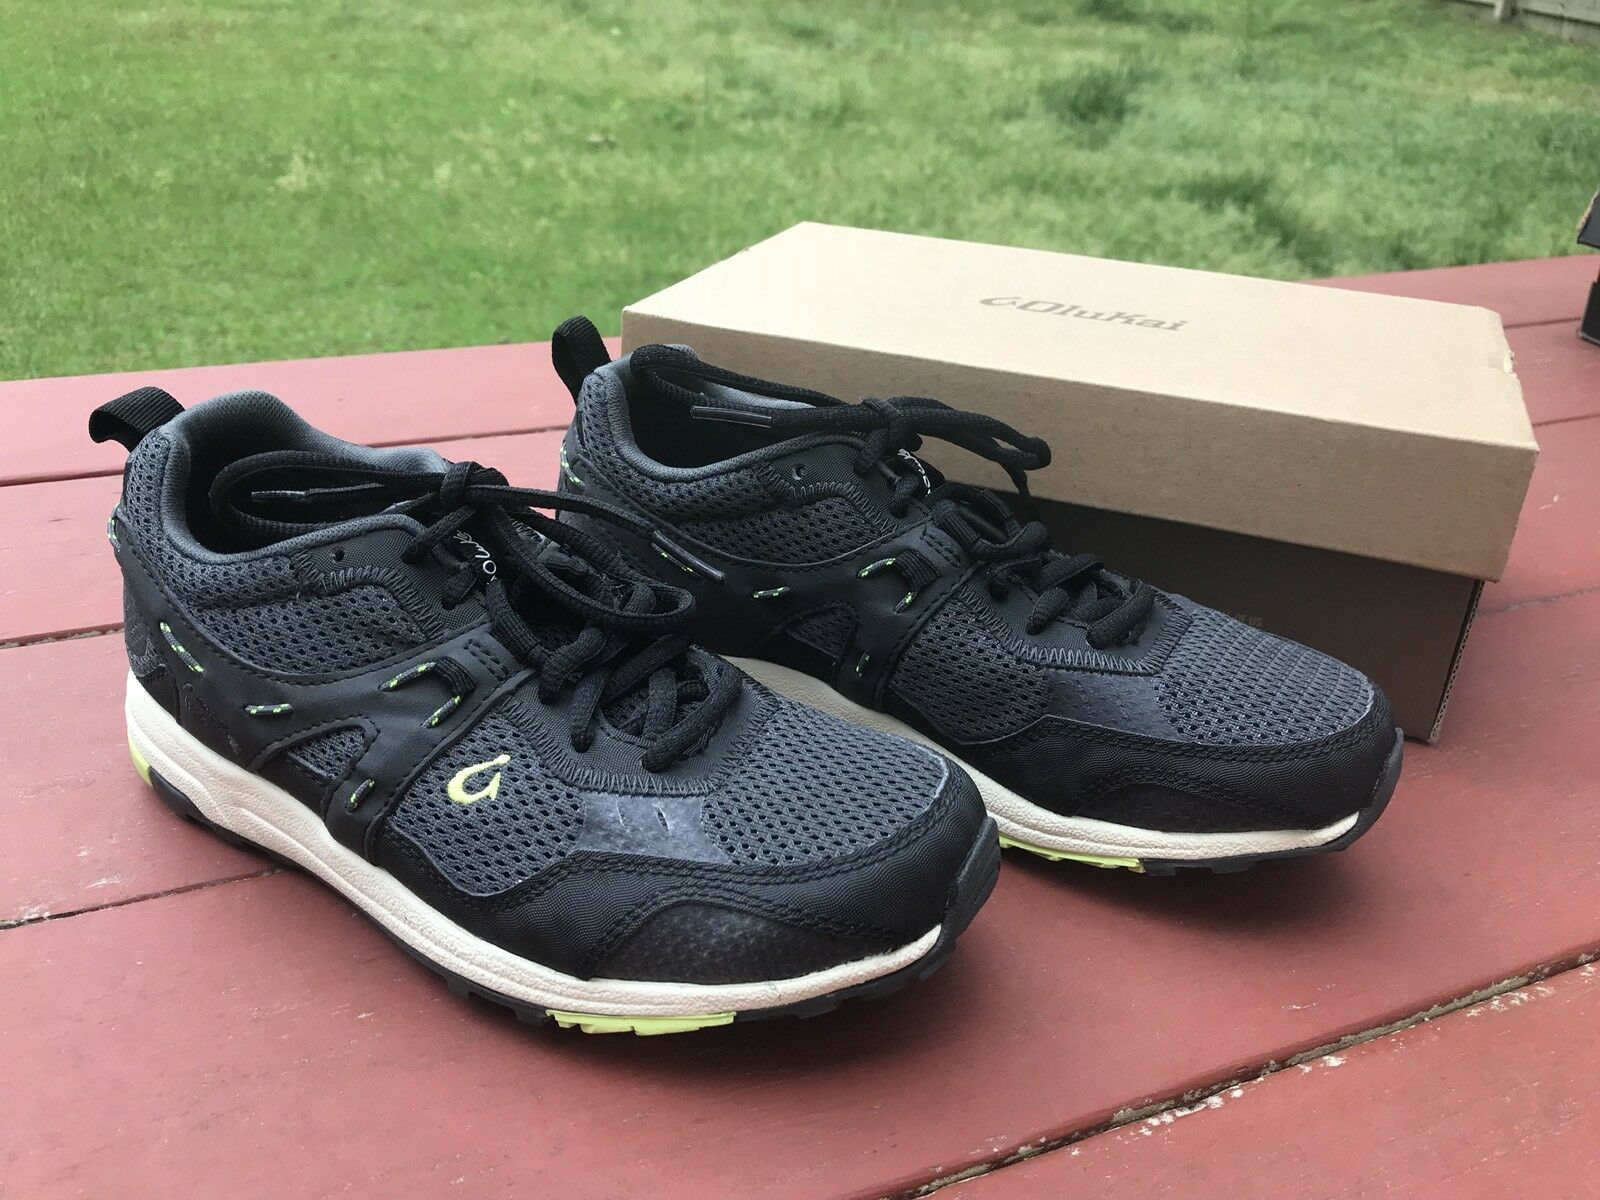 Womens OLUKAI Black And And And Pale Lime Sneaker Trainer 2 shoes NEW SZ 6.5 e8e4fa